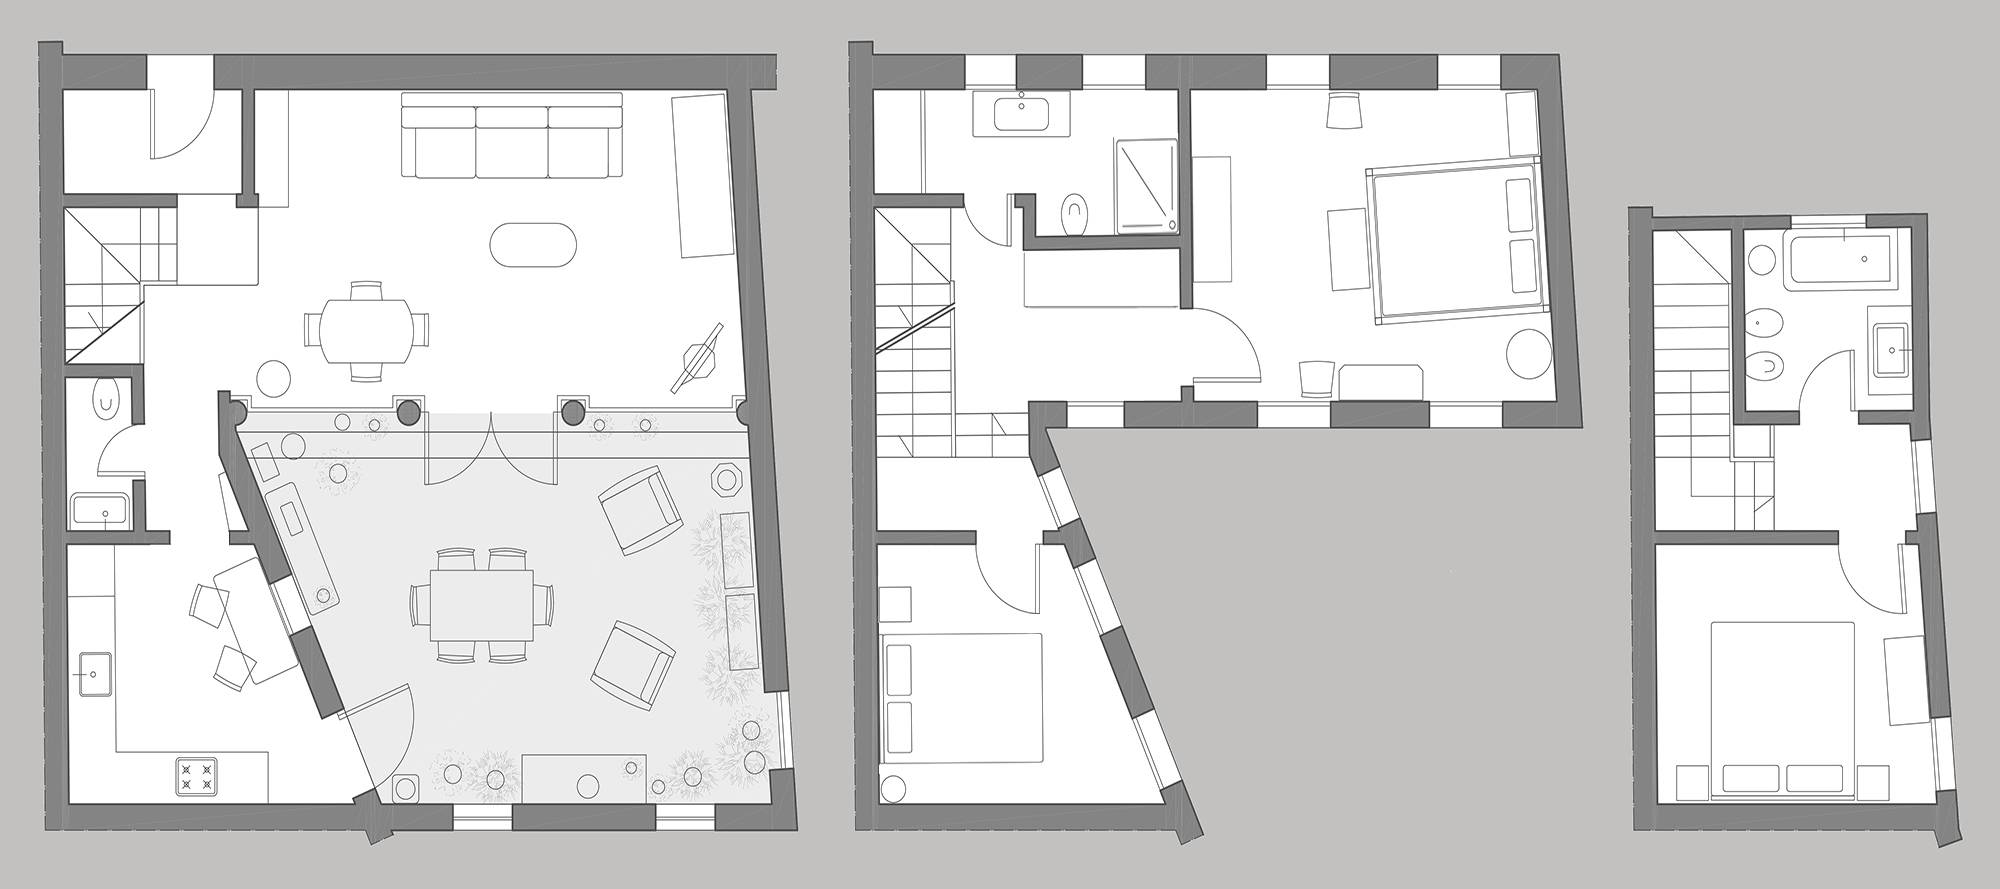 Loredan floor plan